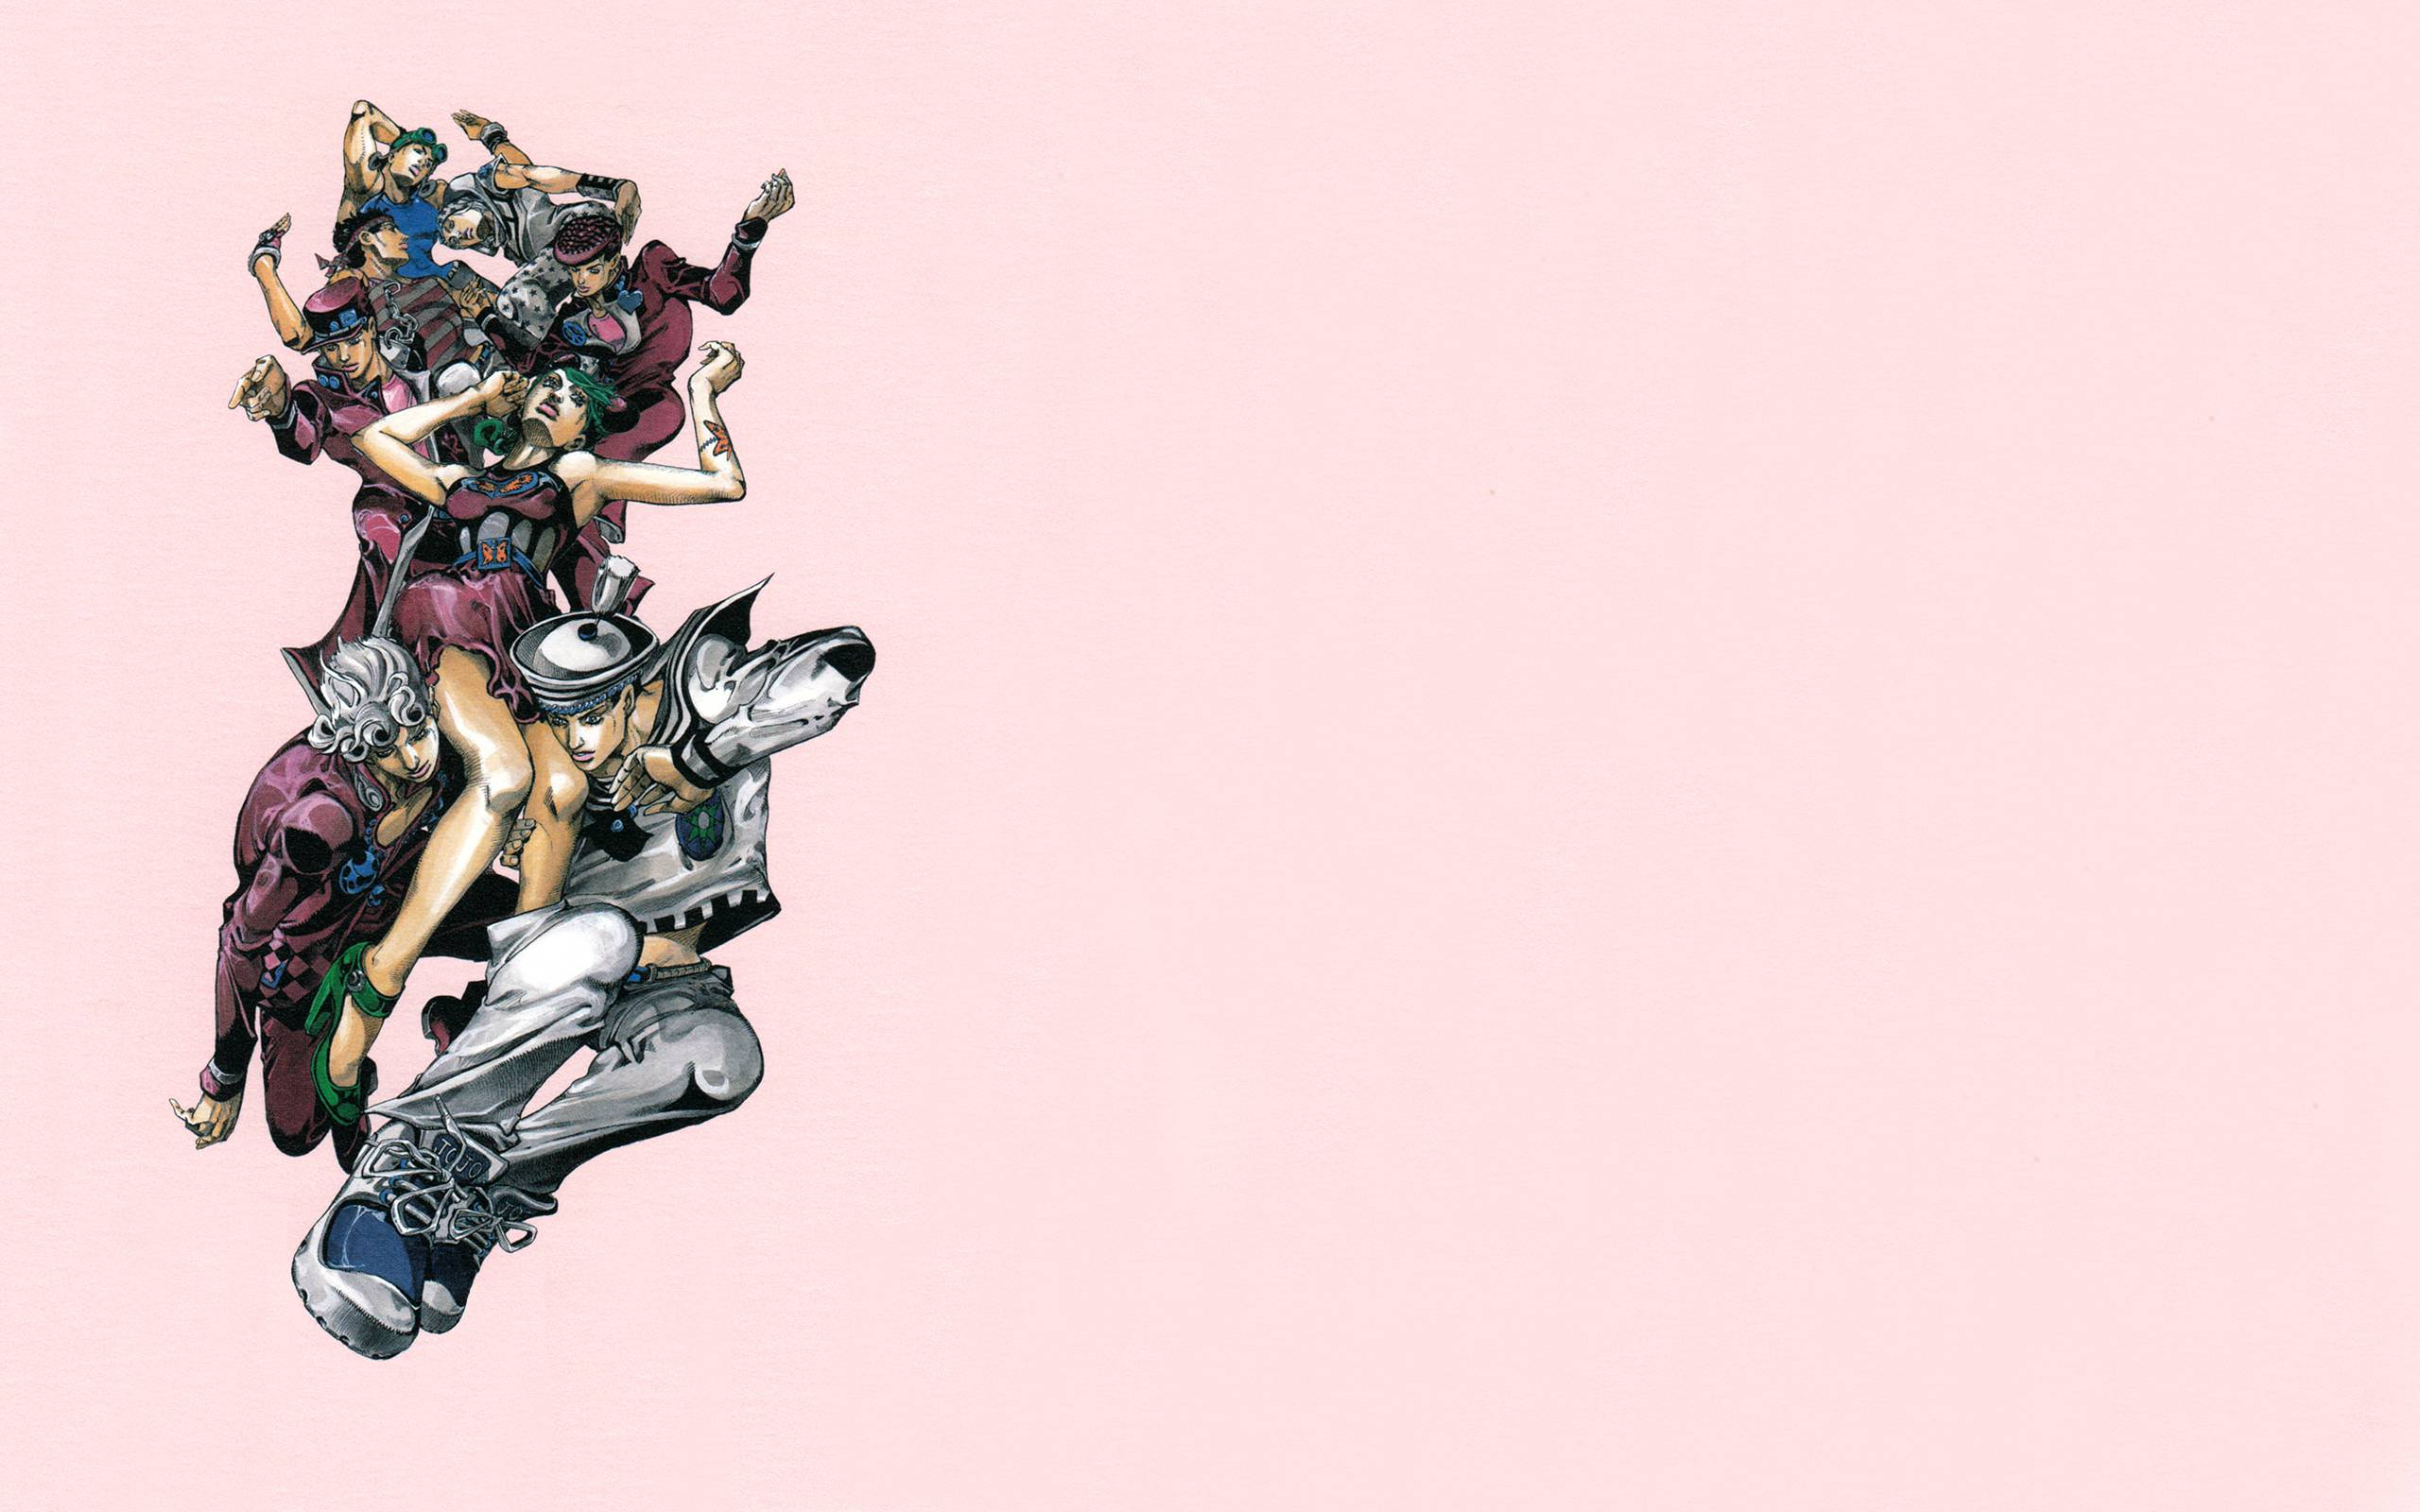 Fanart] Jojolion Wallpaper Dump Batch 8 StardustCrusaders 2560x1600